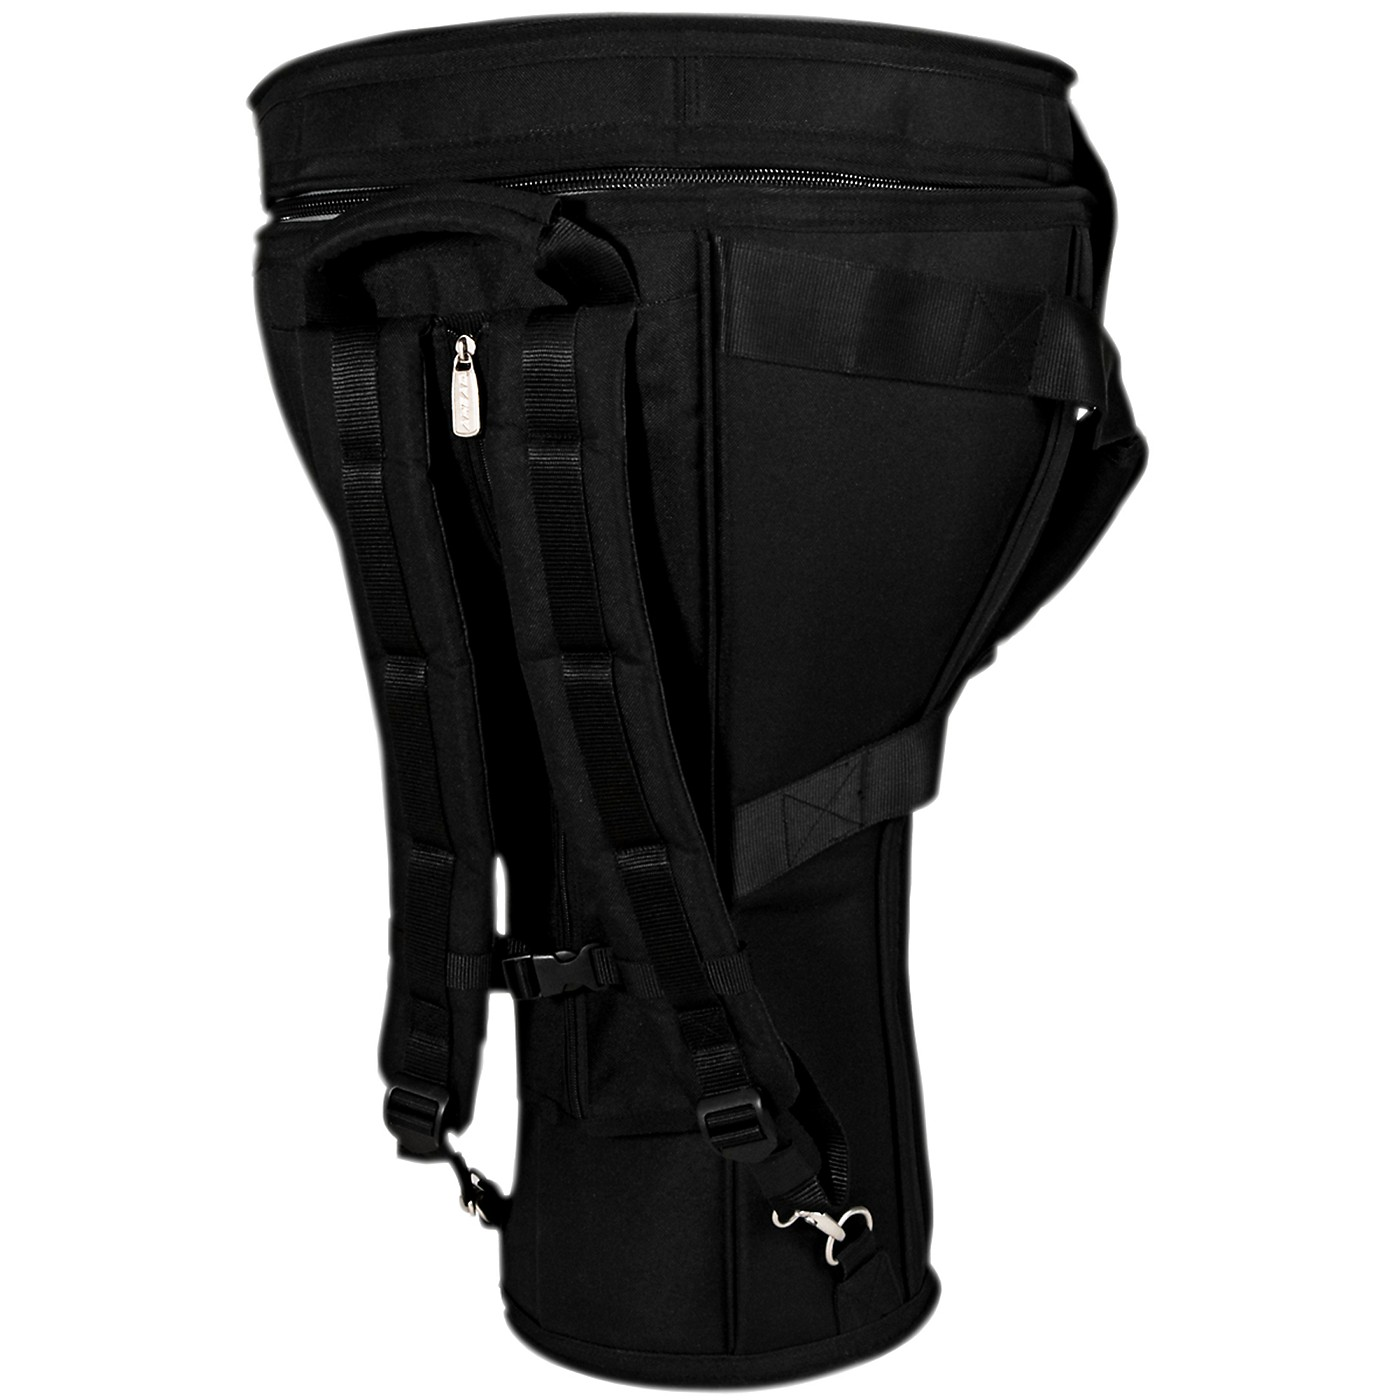 Ahead Armor Cases Djembe Case Deluxe with Back Pack Straps thumbnail